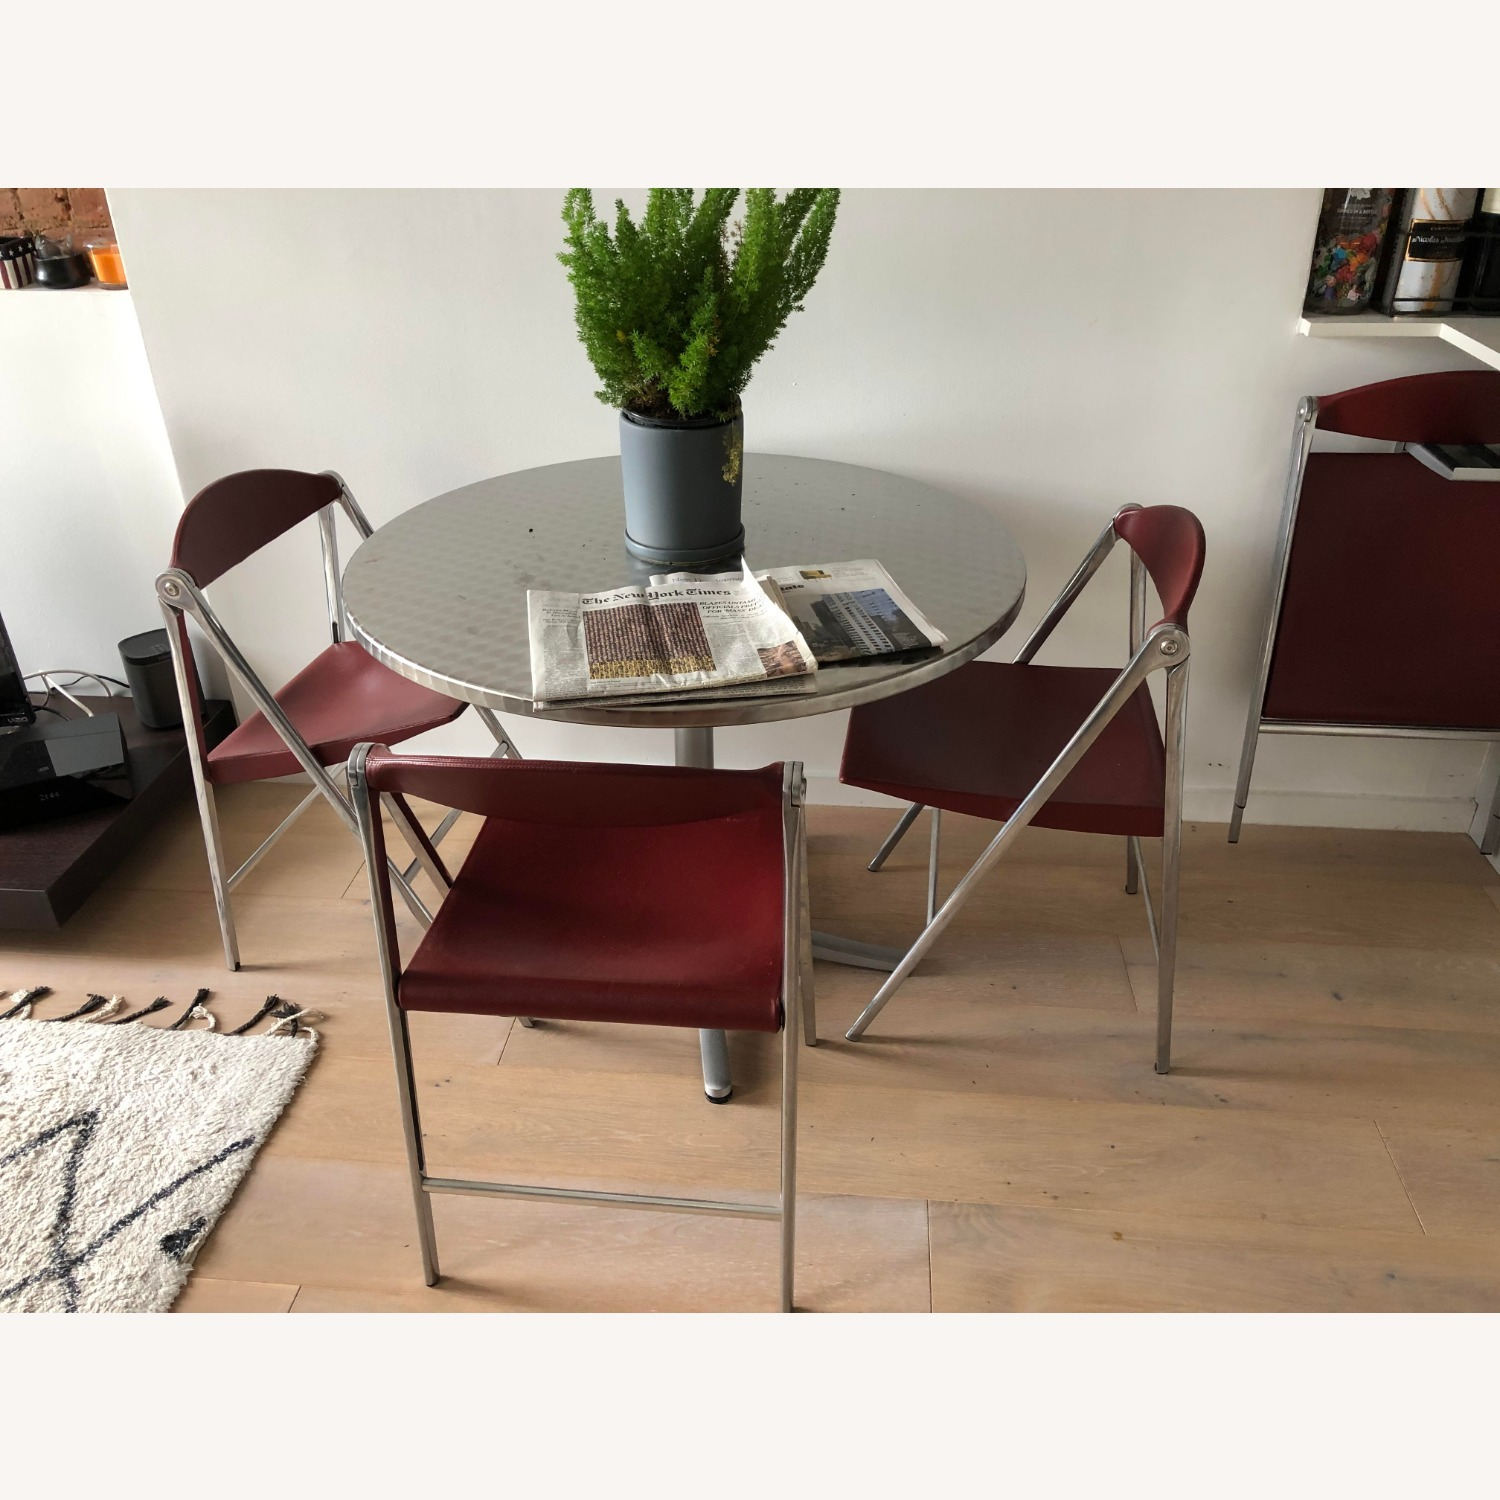 Poltrona Frau Leather Dining Foldable Chairs - image-1